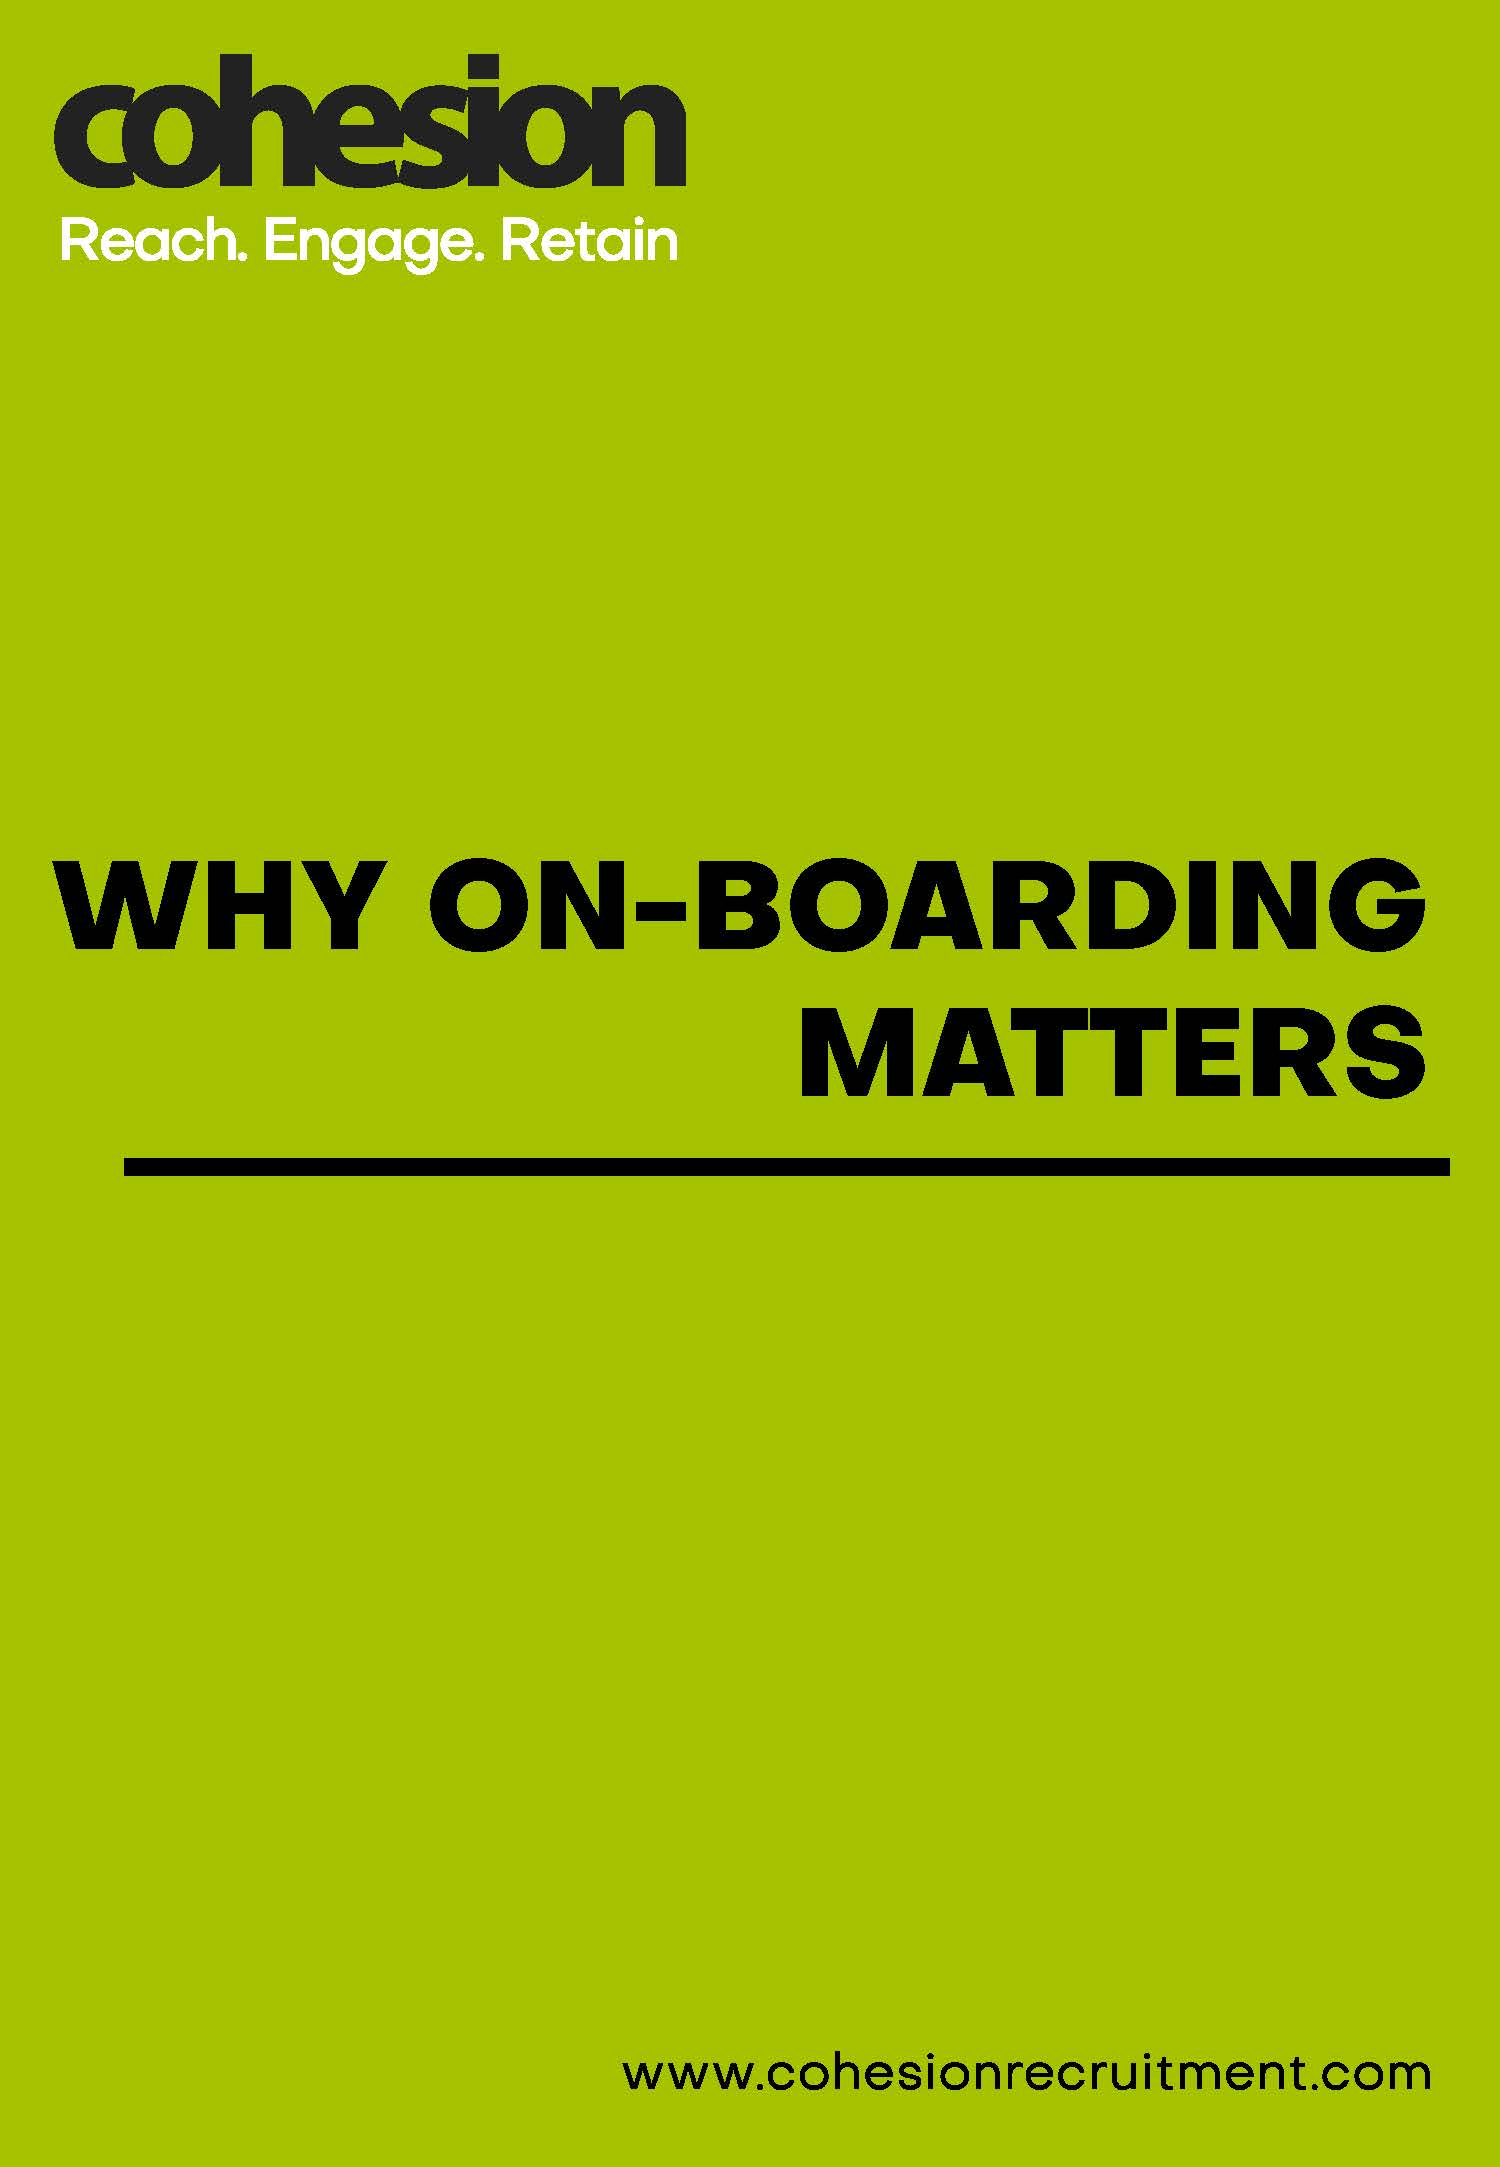 Why On-Boarding Matters